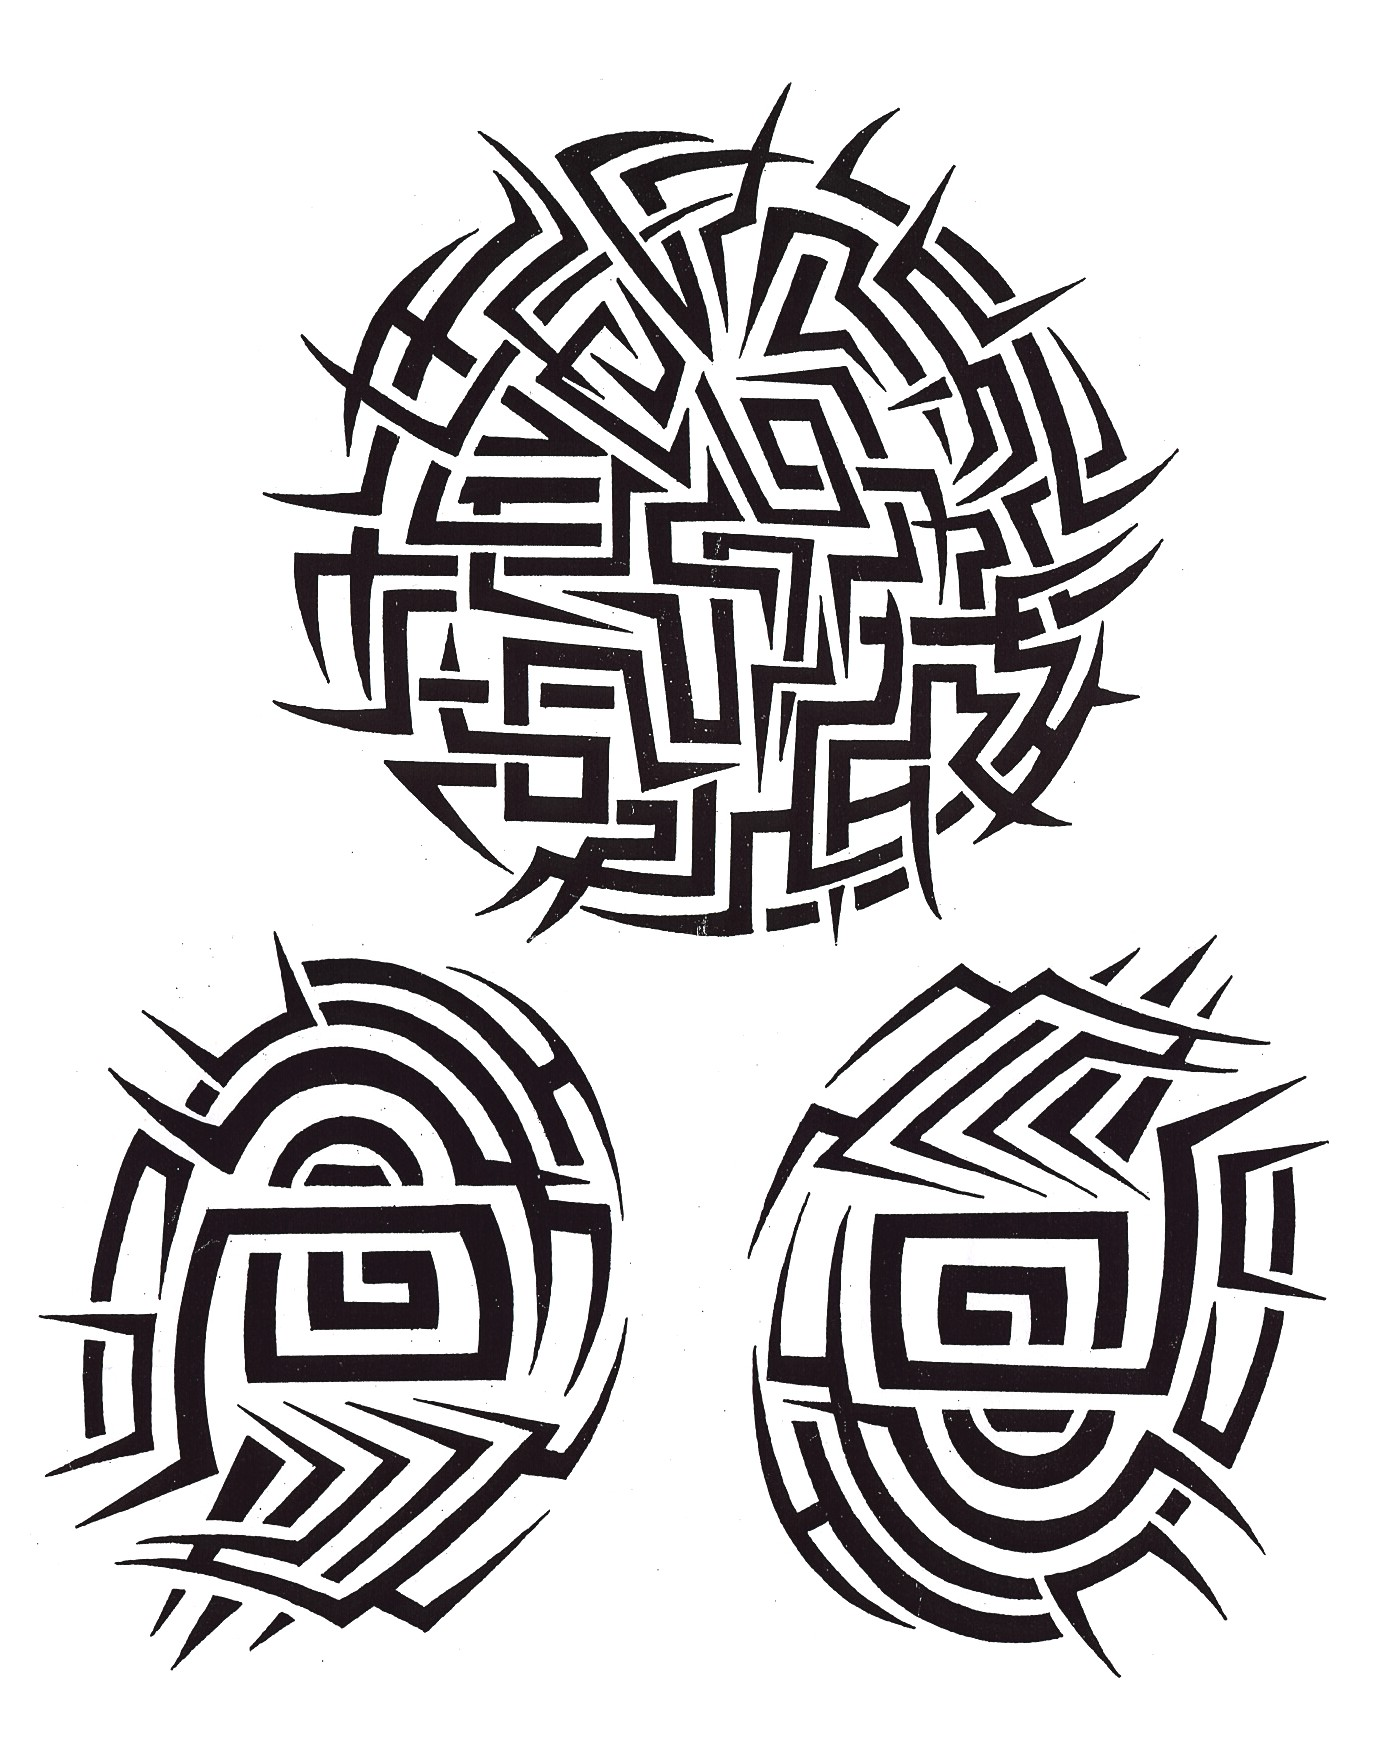 tribal tattoos designs free to download and print free download clipart best clipart best. Black Bedroom Furniture Sets. Home Design Ideas